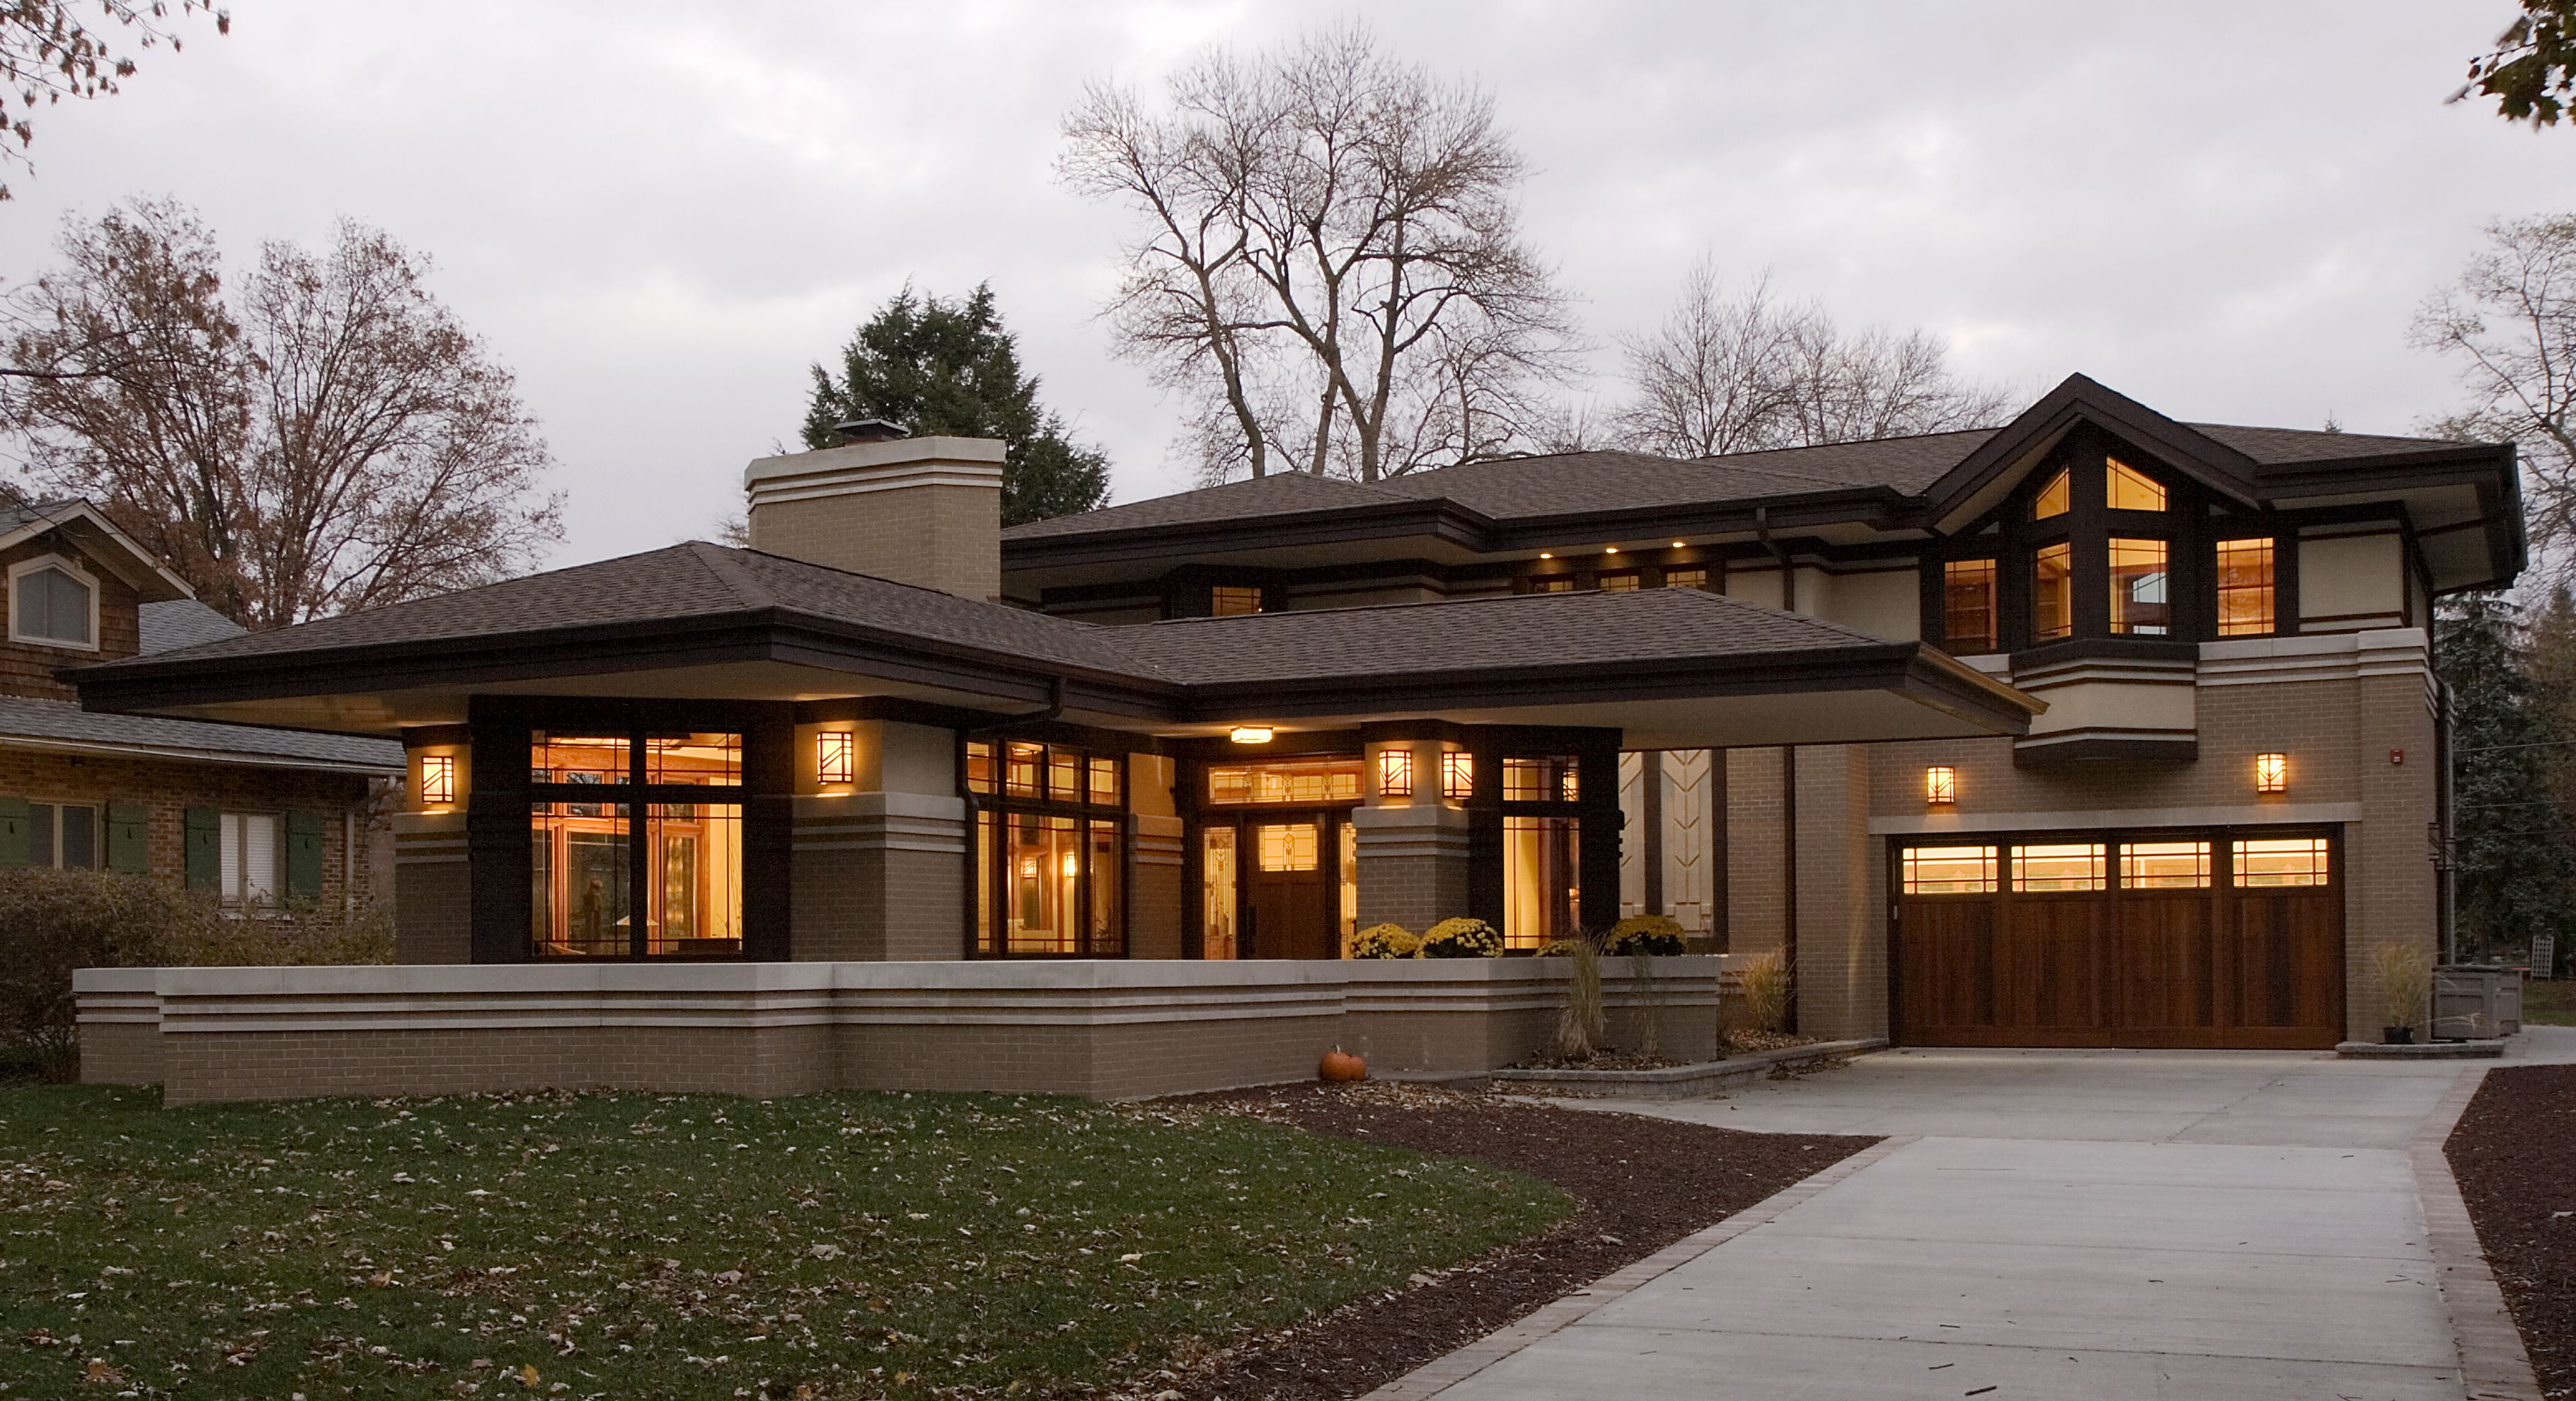 Frank Lloyd Wright Homes Comely Decozt House Architecture Design Idea